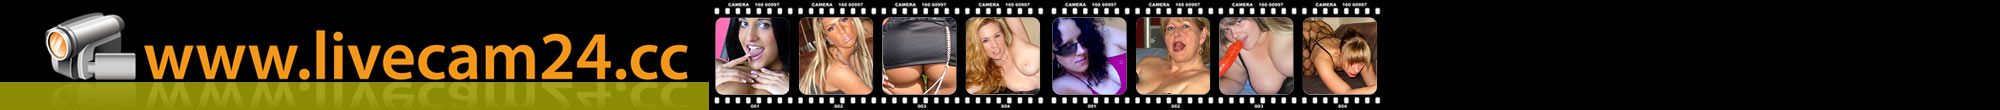 GeileRuby, 20 Jahre, BH: 80 C - ostersex -  - Video Web Cams Live Sex Chat von heissen Girls